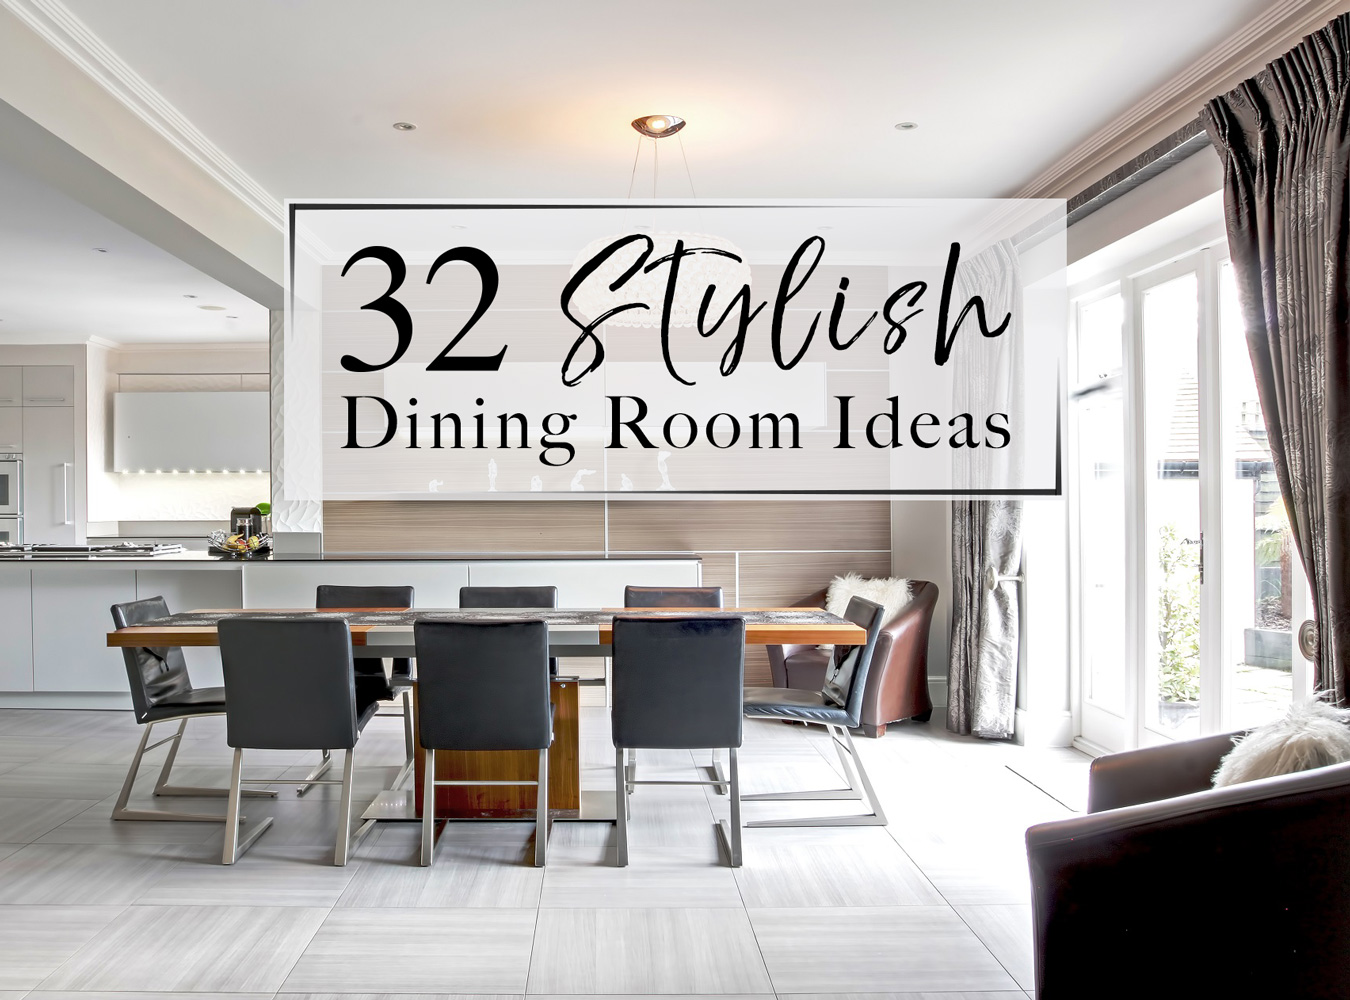 Attirant 32 Stylish Dining Room Decor Ideas To Impress Your Guests